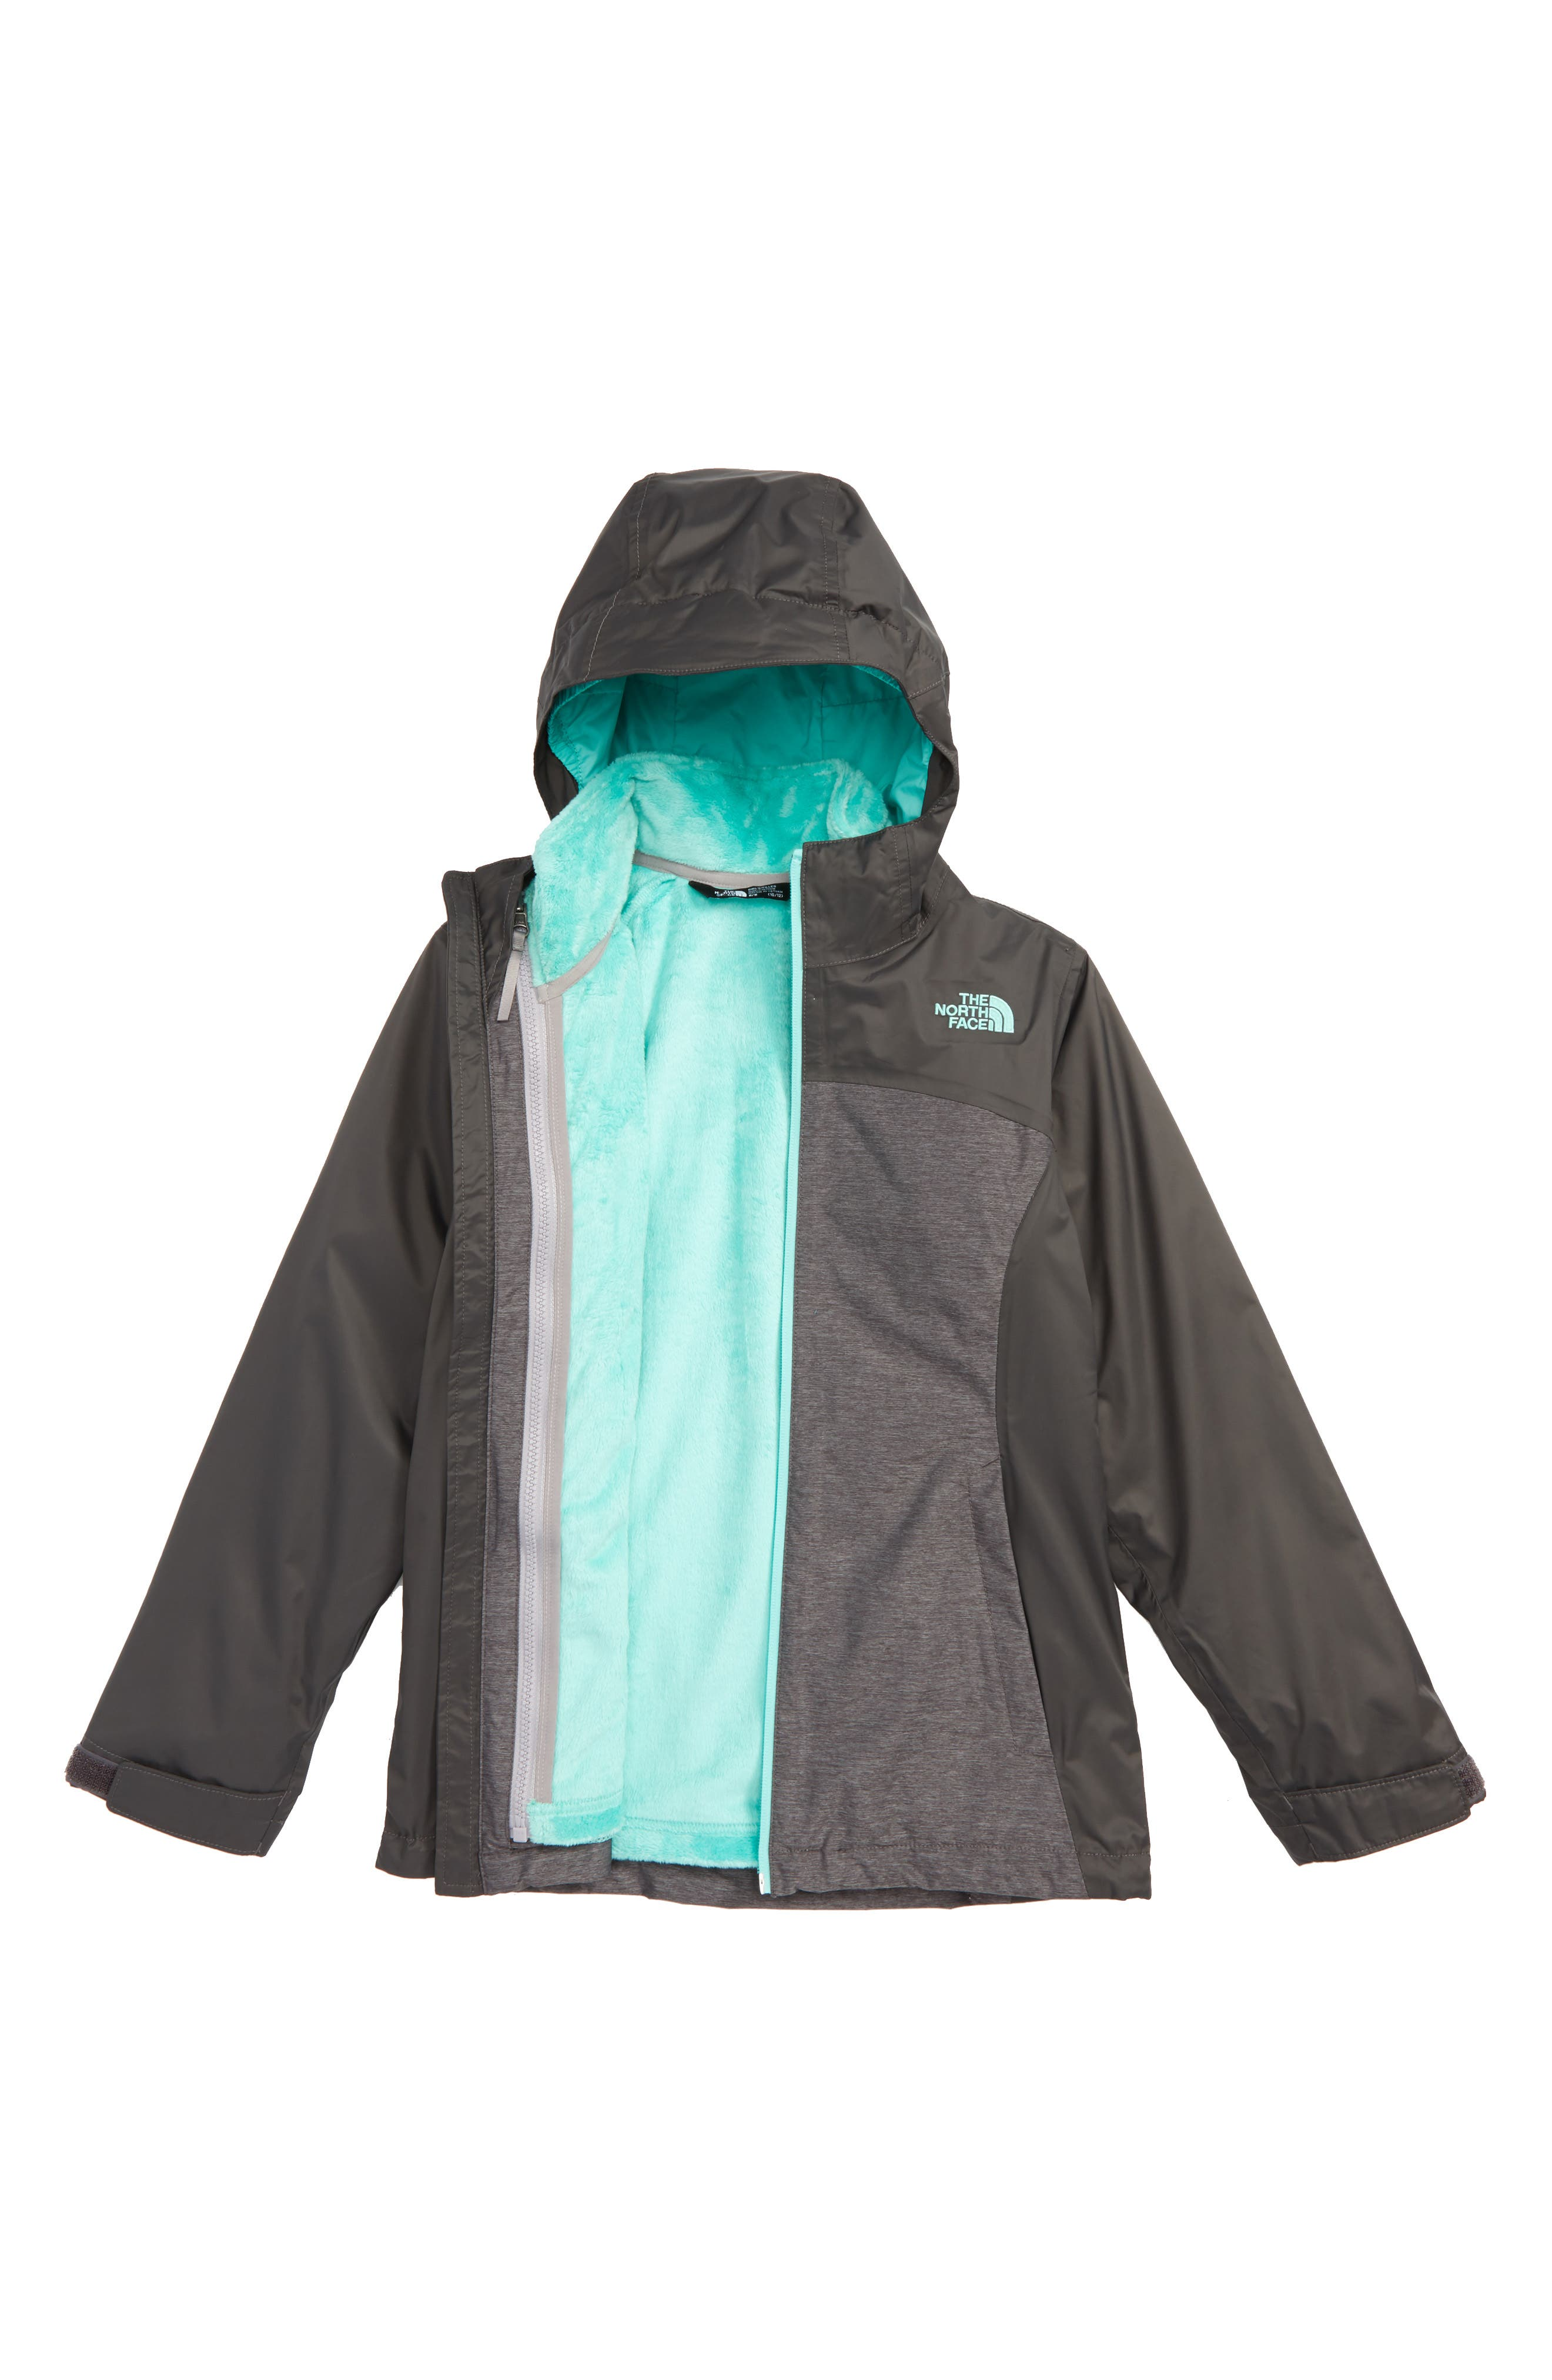 Osolita TriClimate<sup>®</sup> Waterproof 3-in-1 Jacket,                             Main thumbnail 1, color,                             Graphite Grey